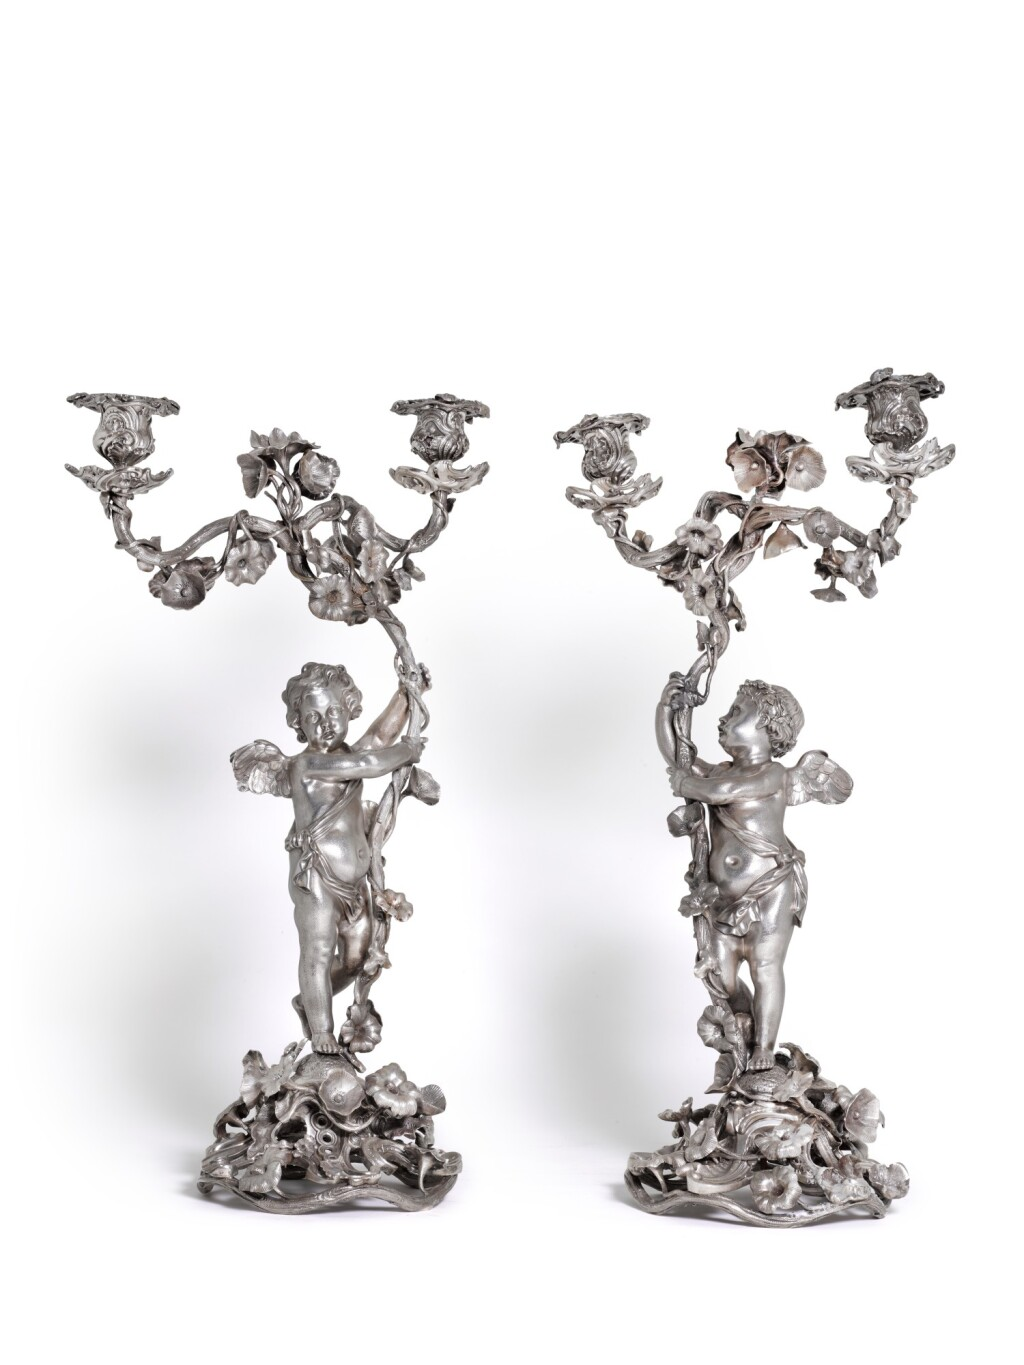 A PAIR OF ROCOCO SILVER TWO-LIGHT CANDELABRA, JEAN-BAPTISTE VAILLANT, ST PETERSBURG, 1845